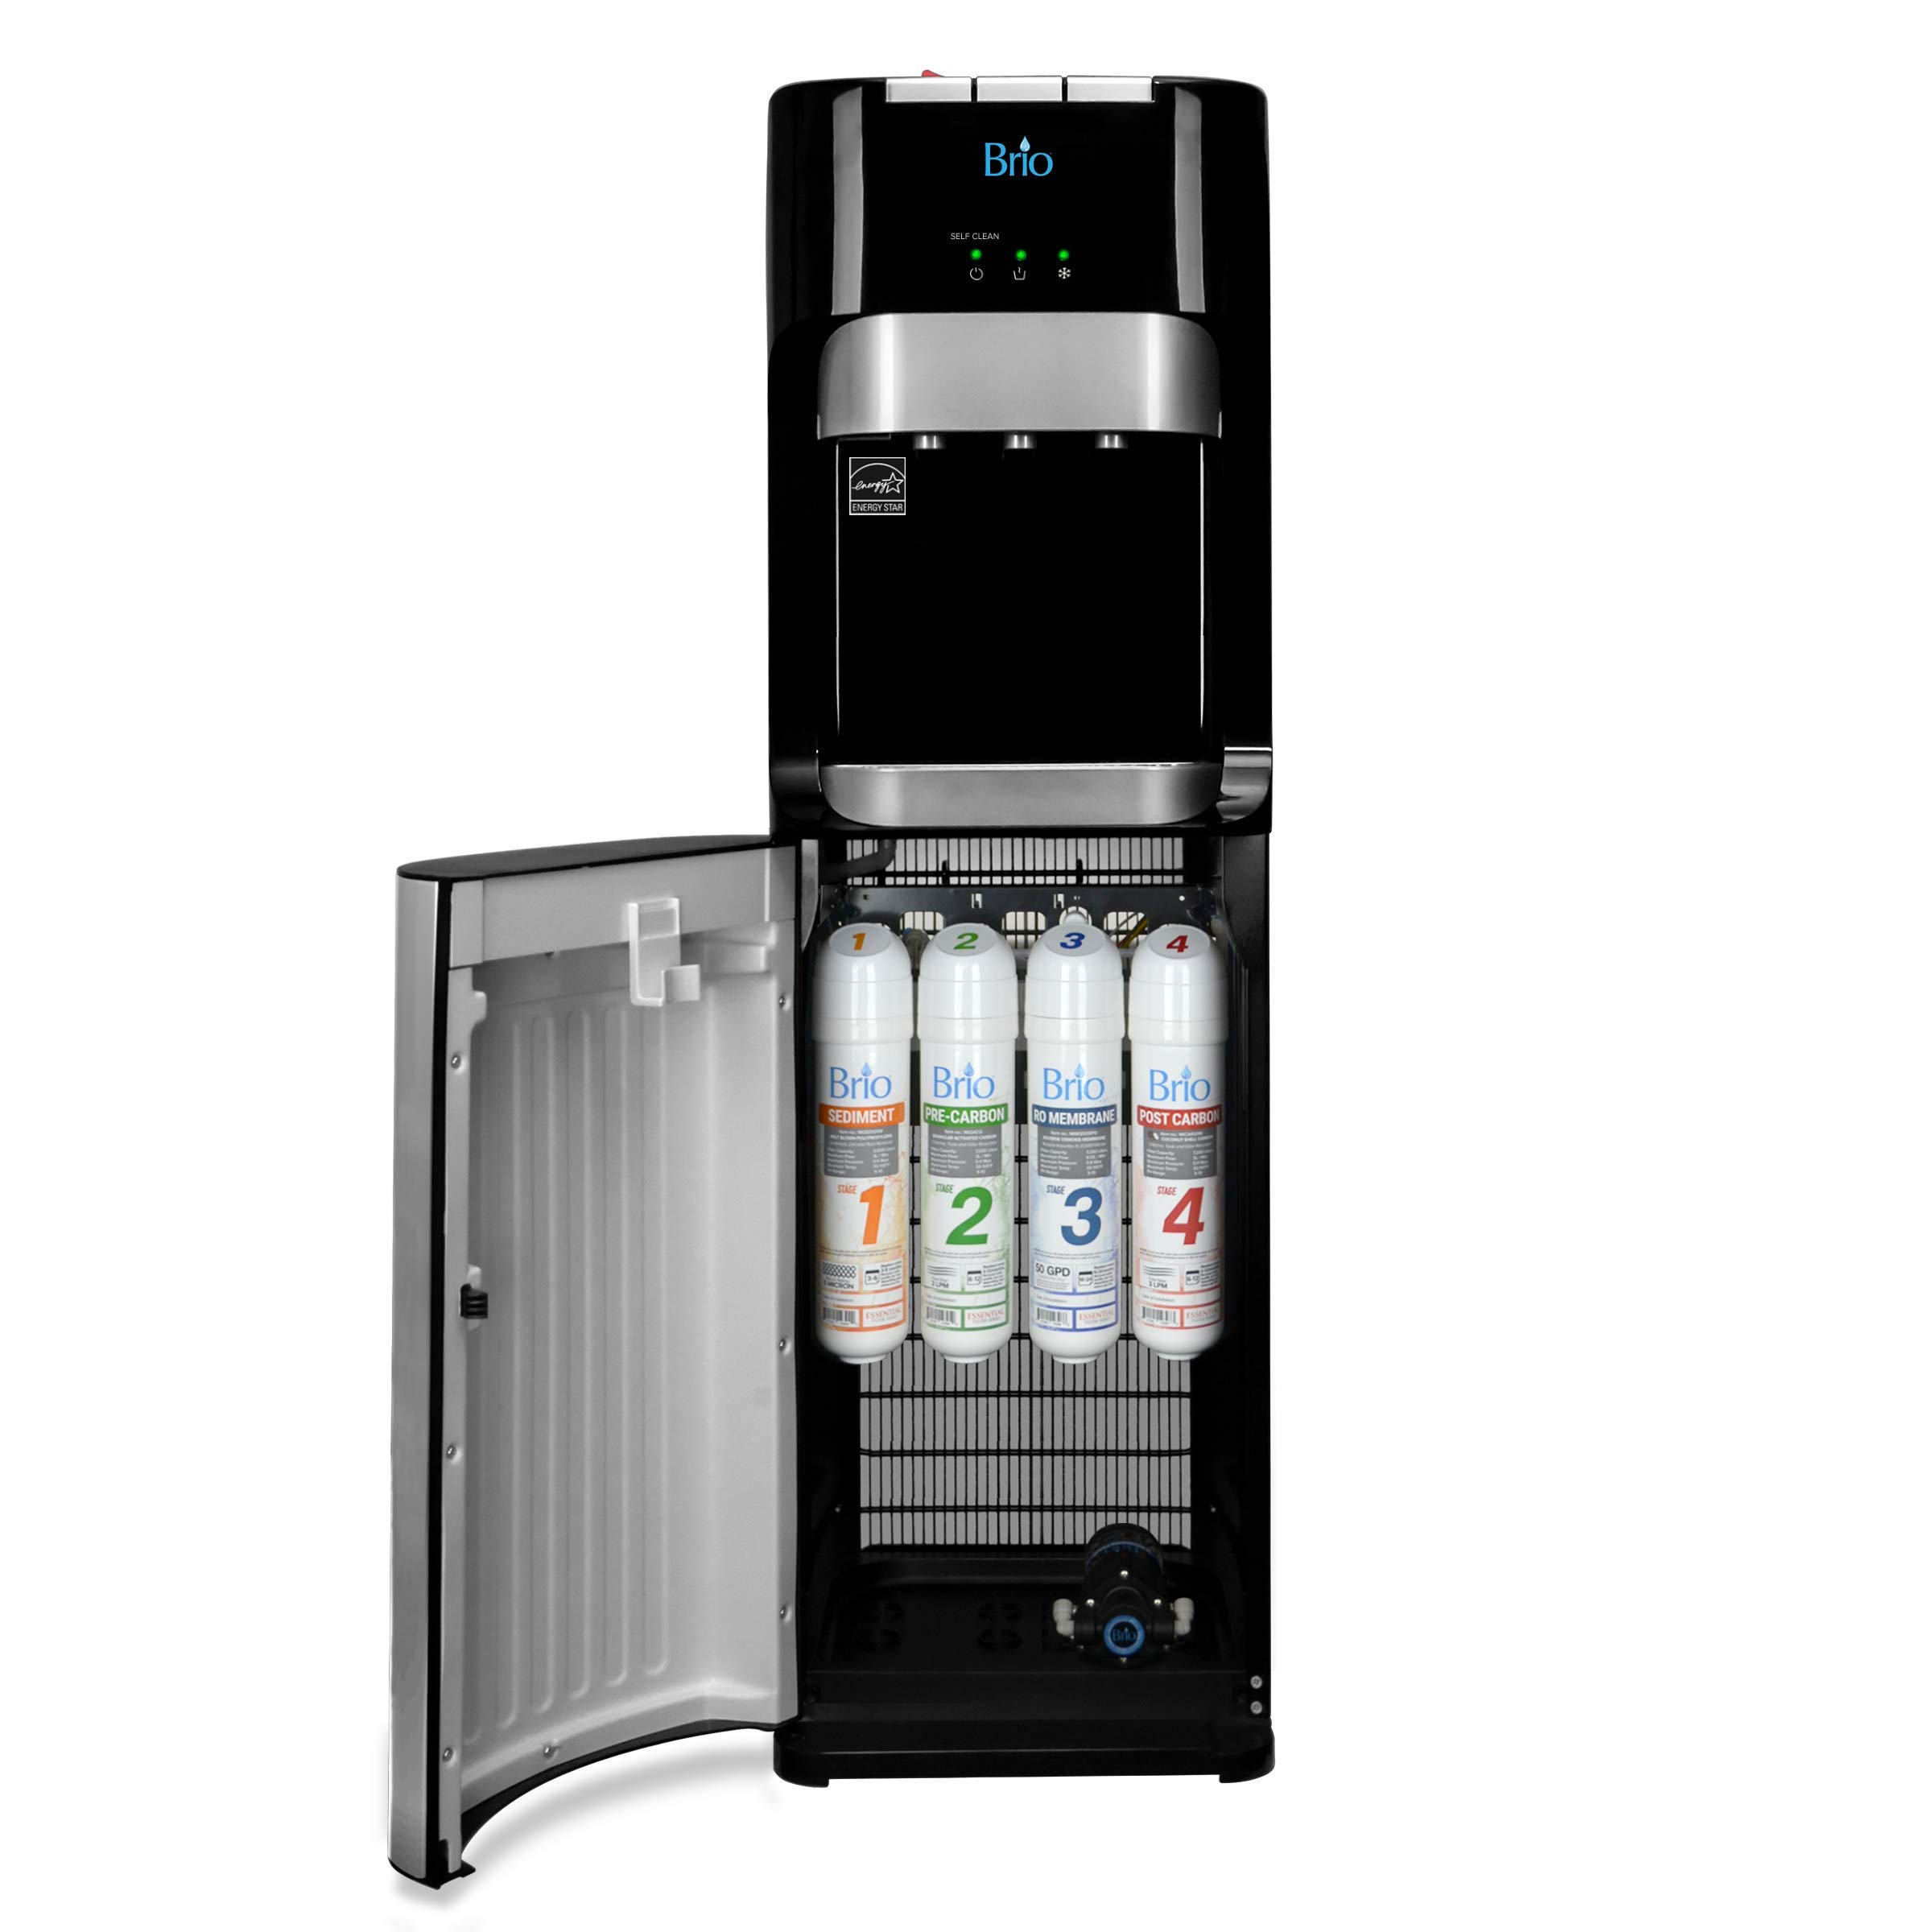 Brio Commercial Grade Bottleless Ultra Safe Reverse Osmosis Drinking Water Filter Water Cooler Dispenser-3 Temperature Settings Hot, Cold & Room Water - UL/Energy Star Approved - Point of Use - Version 2 by Brio